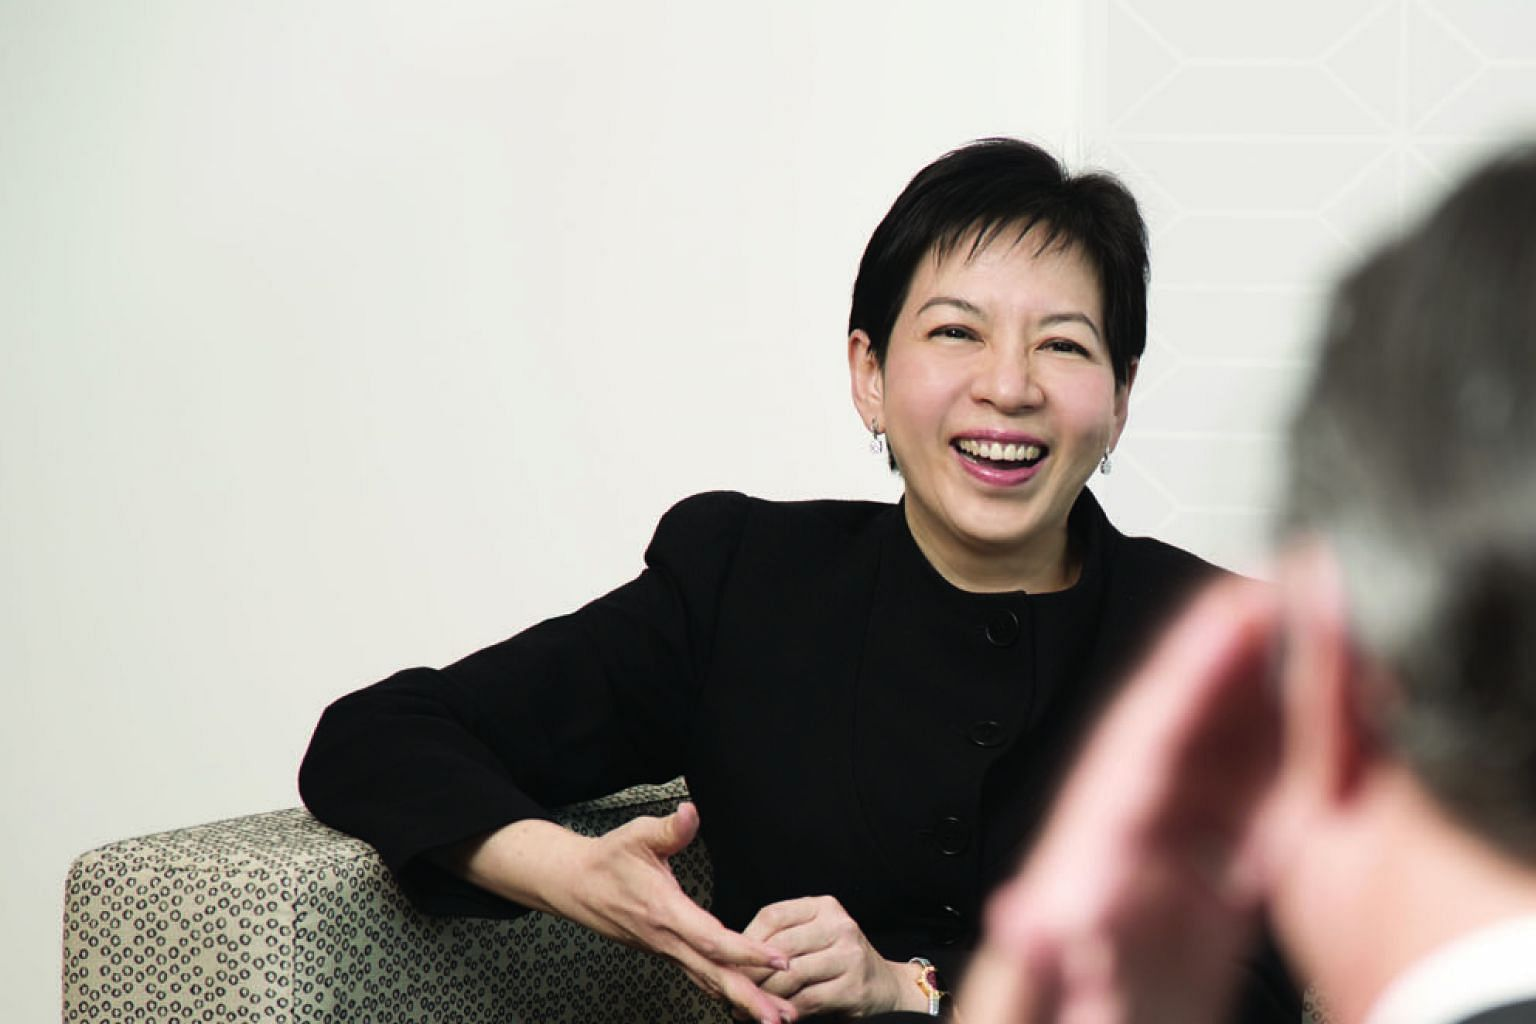 Regional magazine FinanceAsia lauded DBS' head of institutional banking Jeanette Wong for leading the bank's efforts in growing its fee income business and building up its advisory and deal-making capabilities.